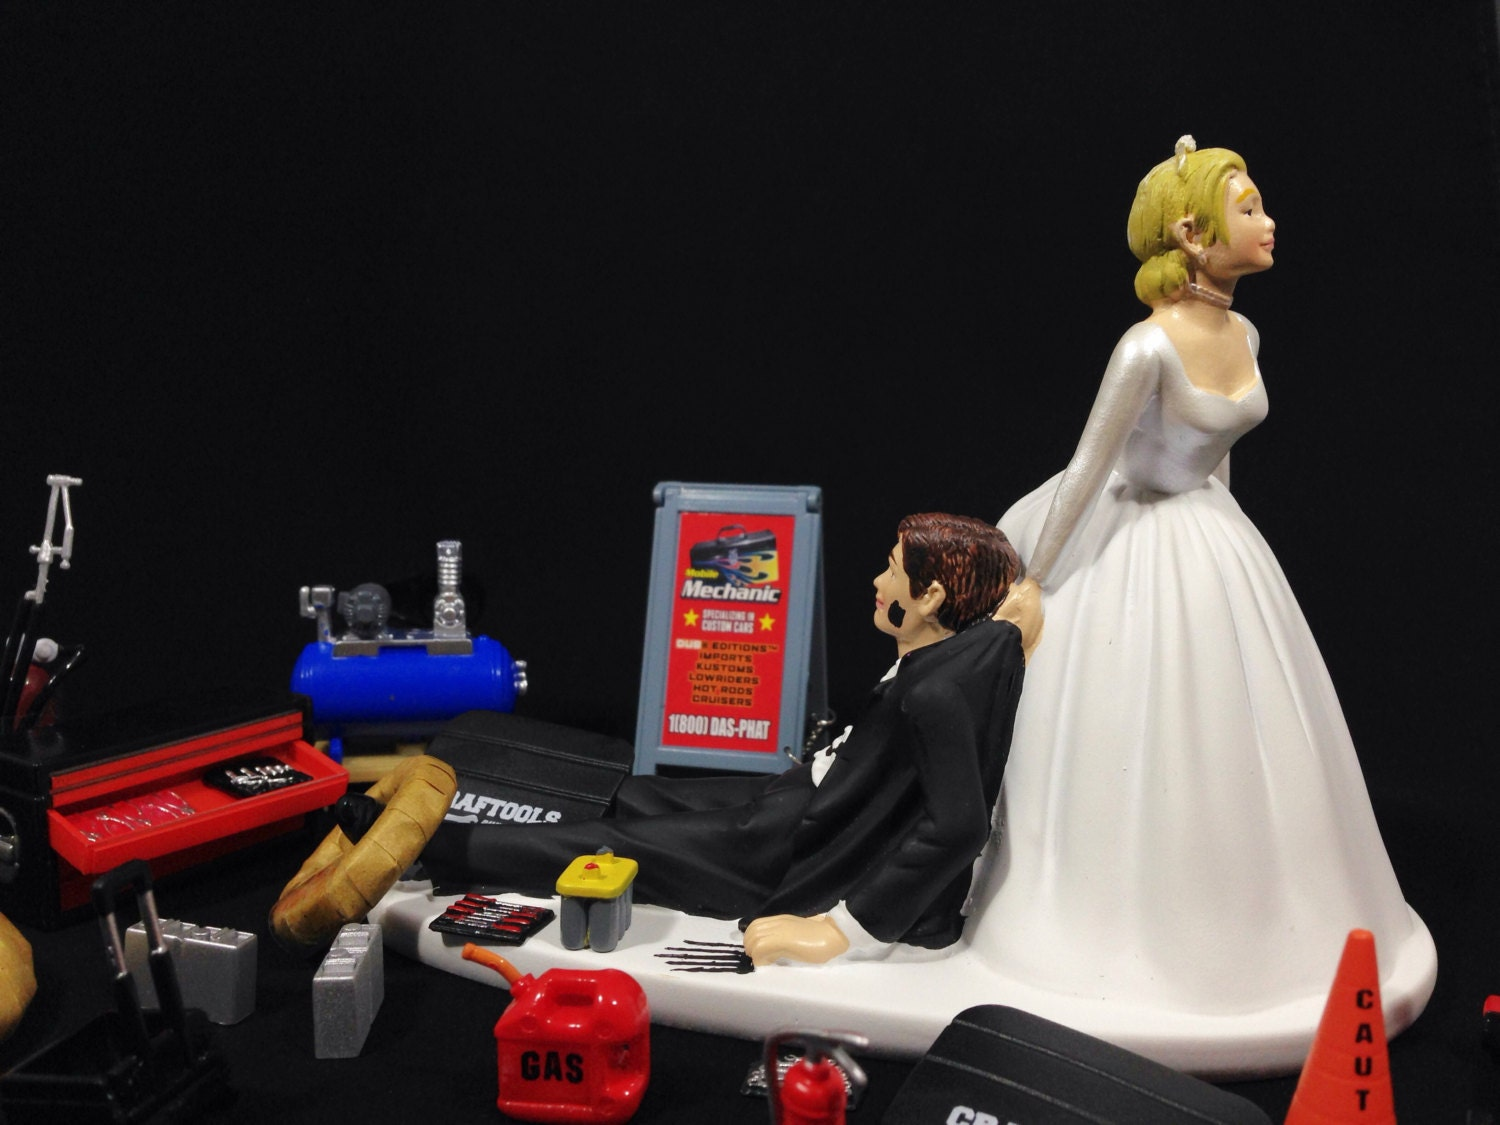 Funny Wedding Cake Topper With Auto Mechanic Tools Humorous